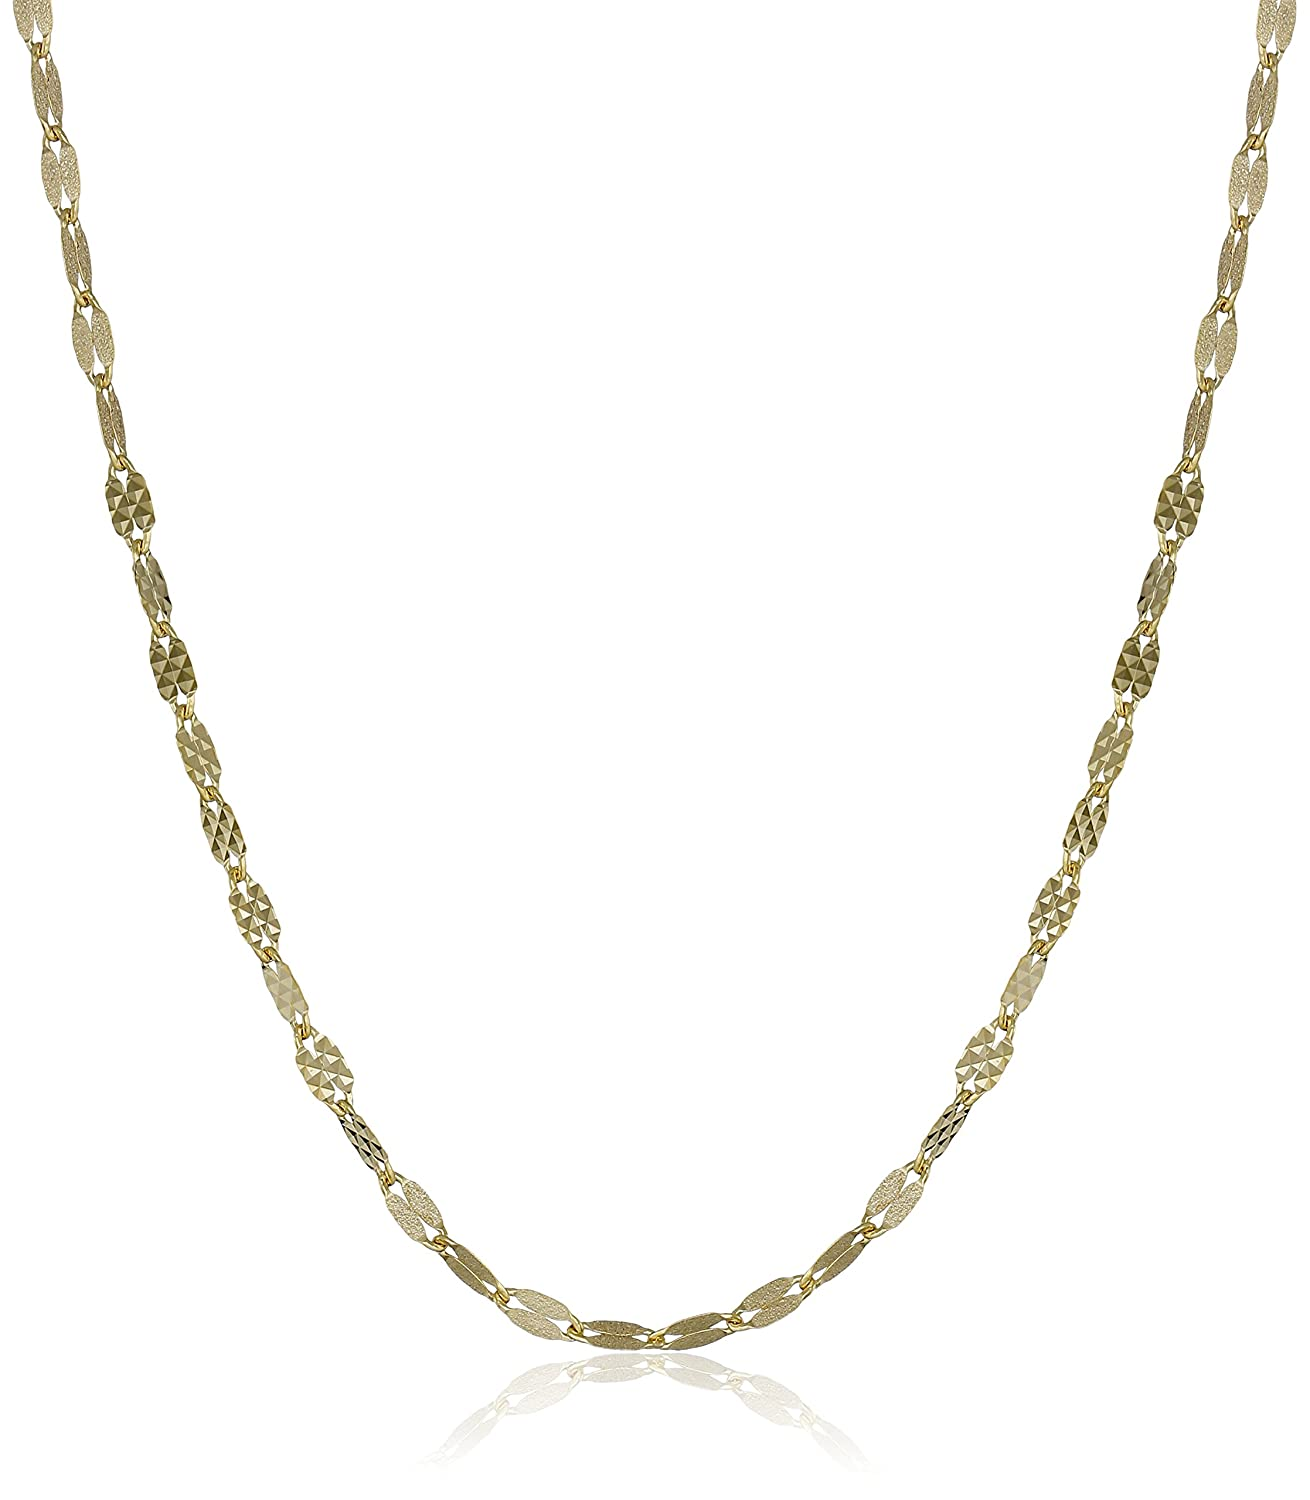 14k Gold Italian Diamond-Cut and Satin Finish Link Necklace